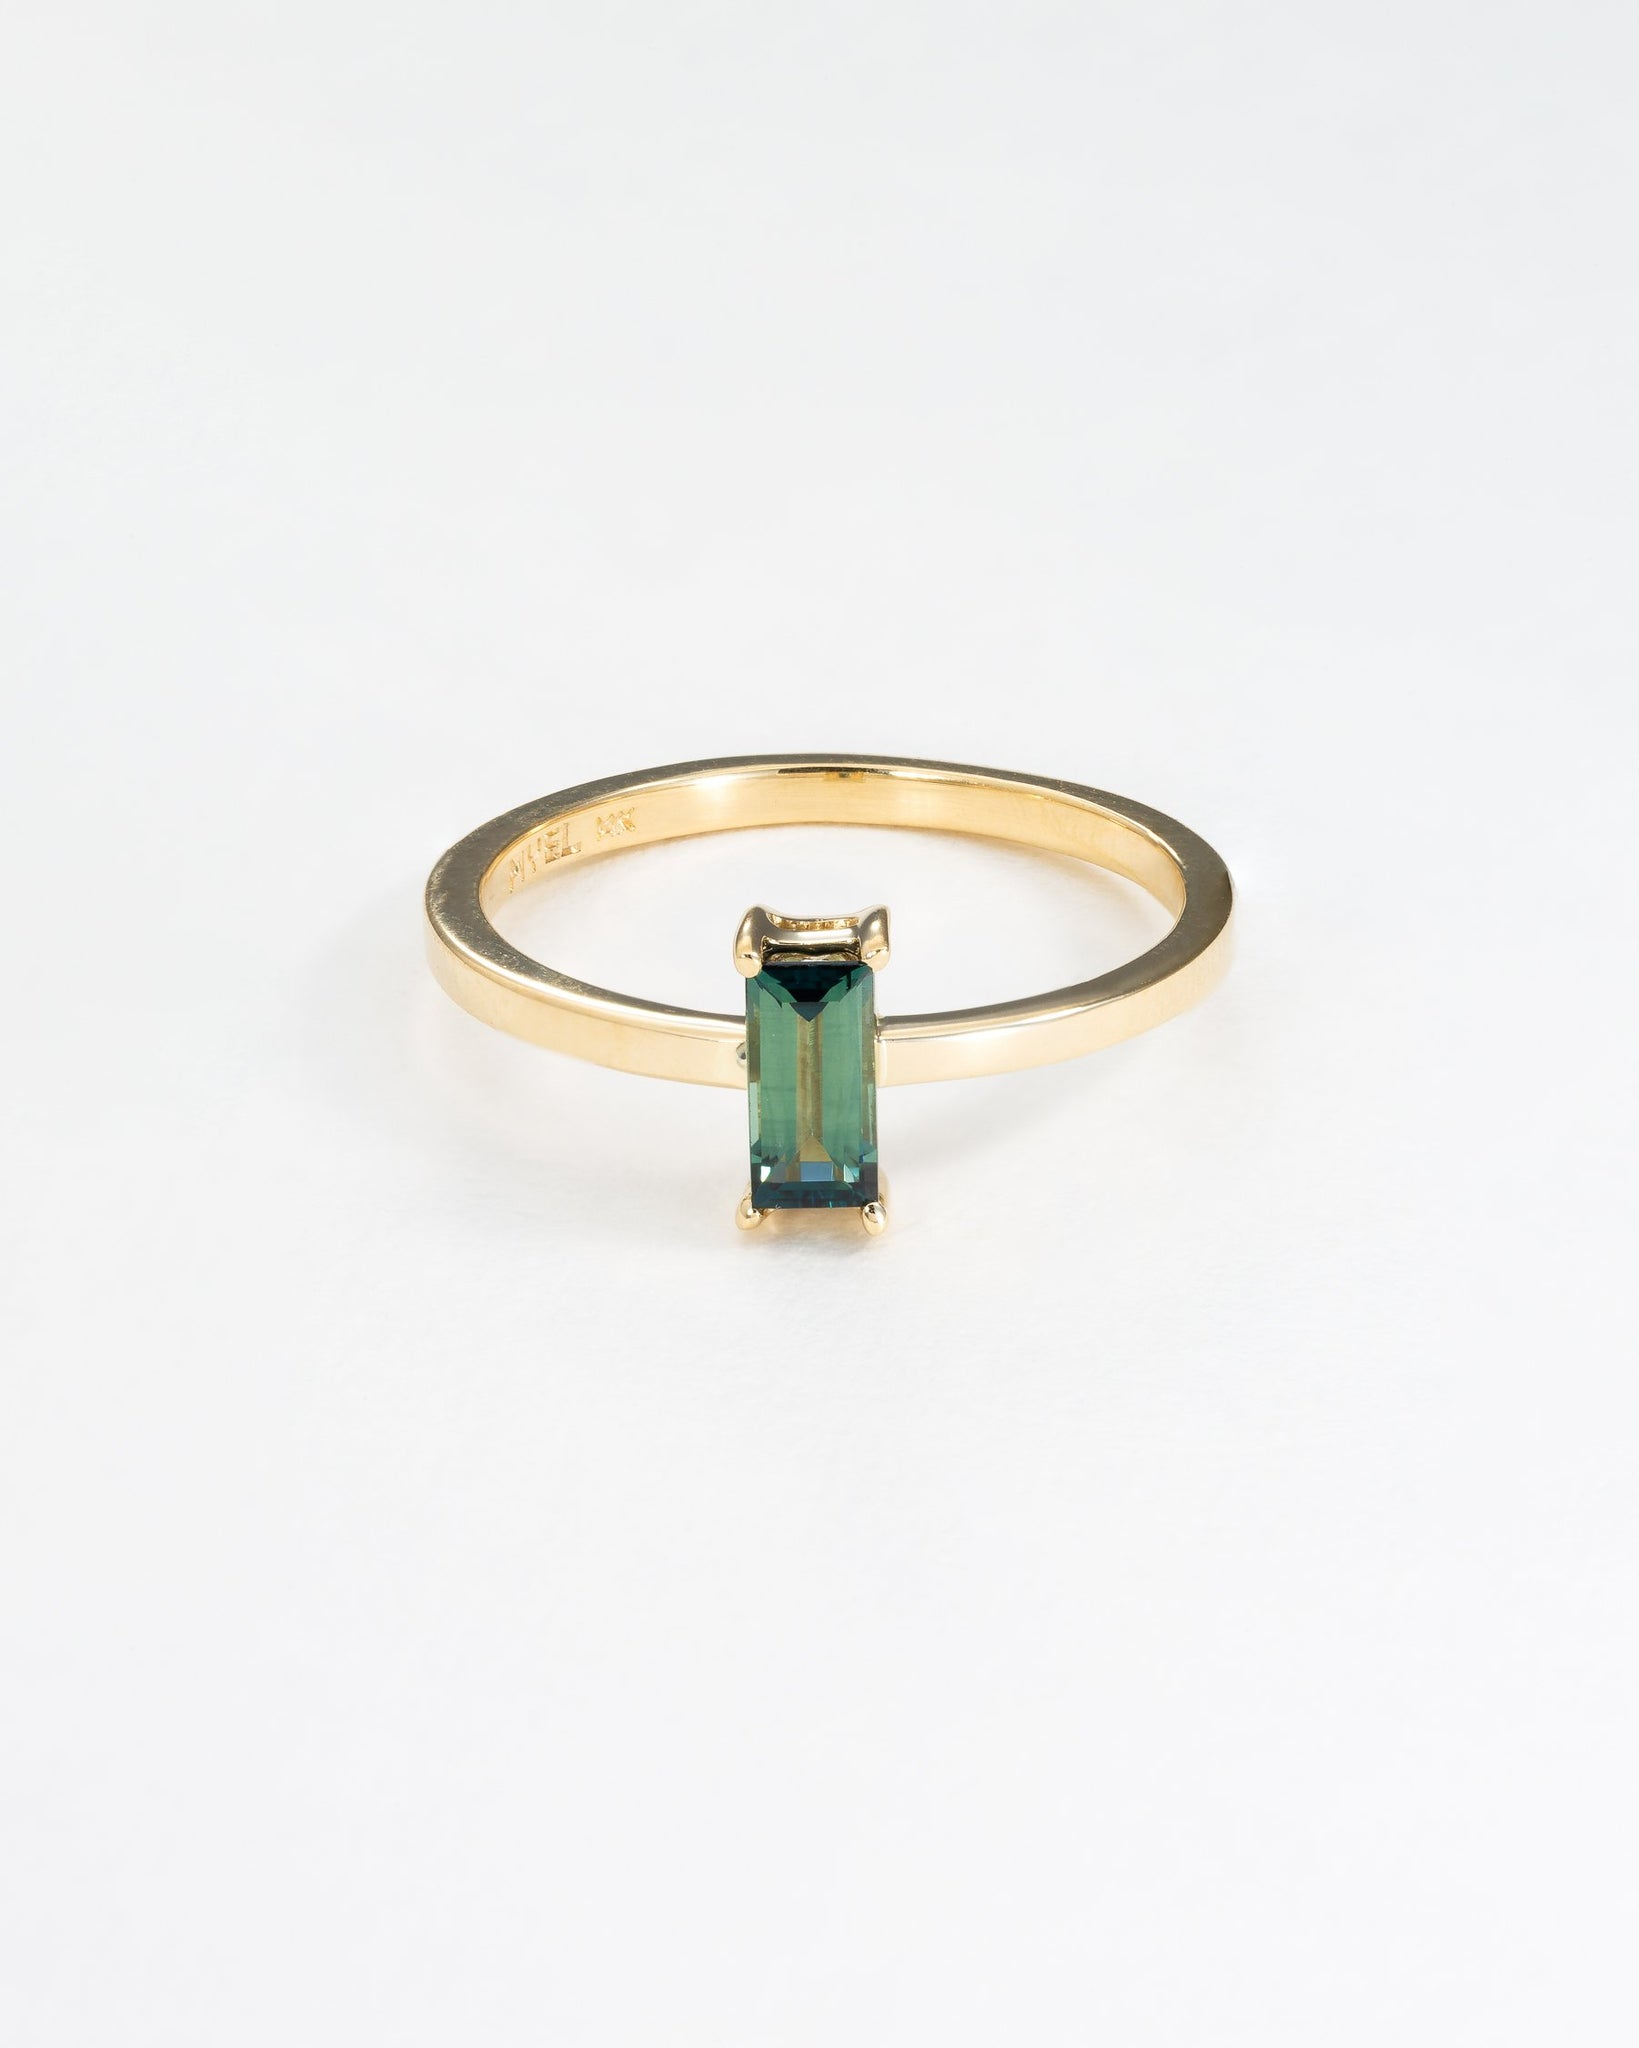 Liaisons Baguette Ring in Yellow Gold with a Green Australian Sapphire